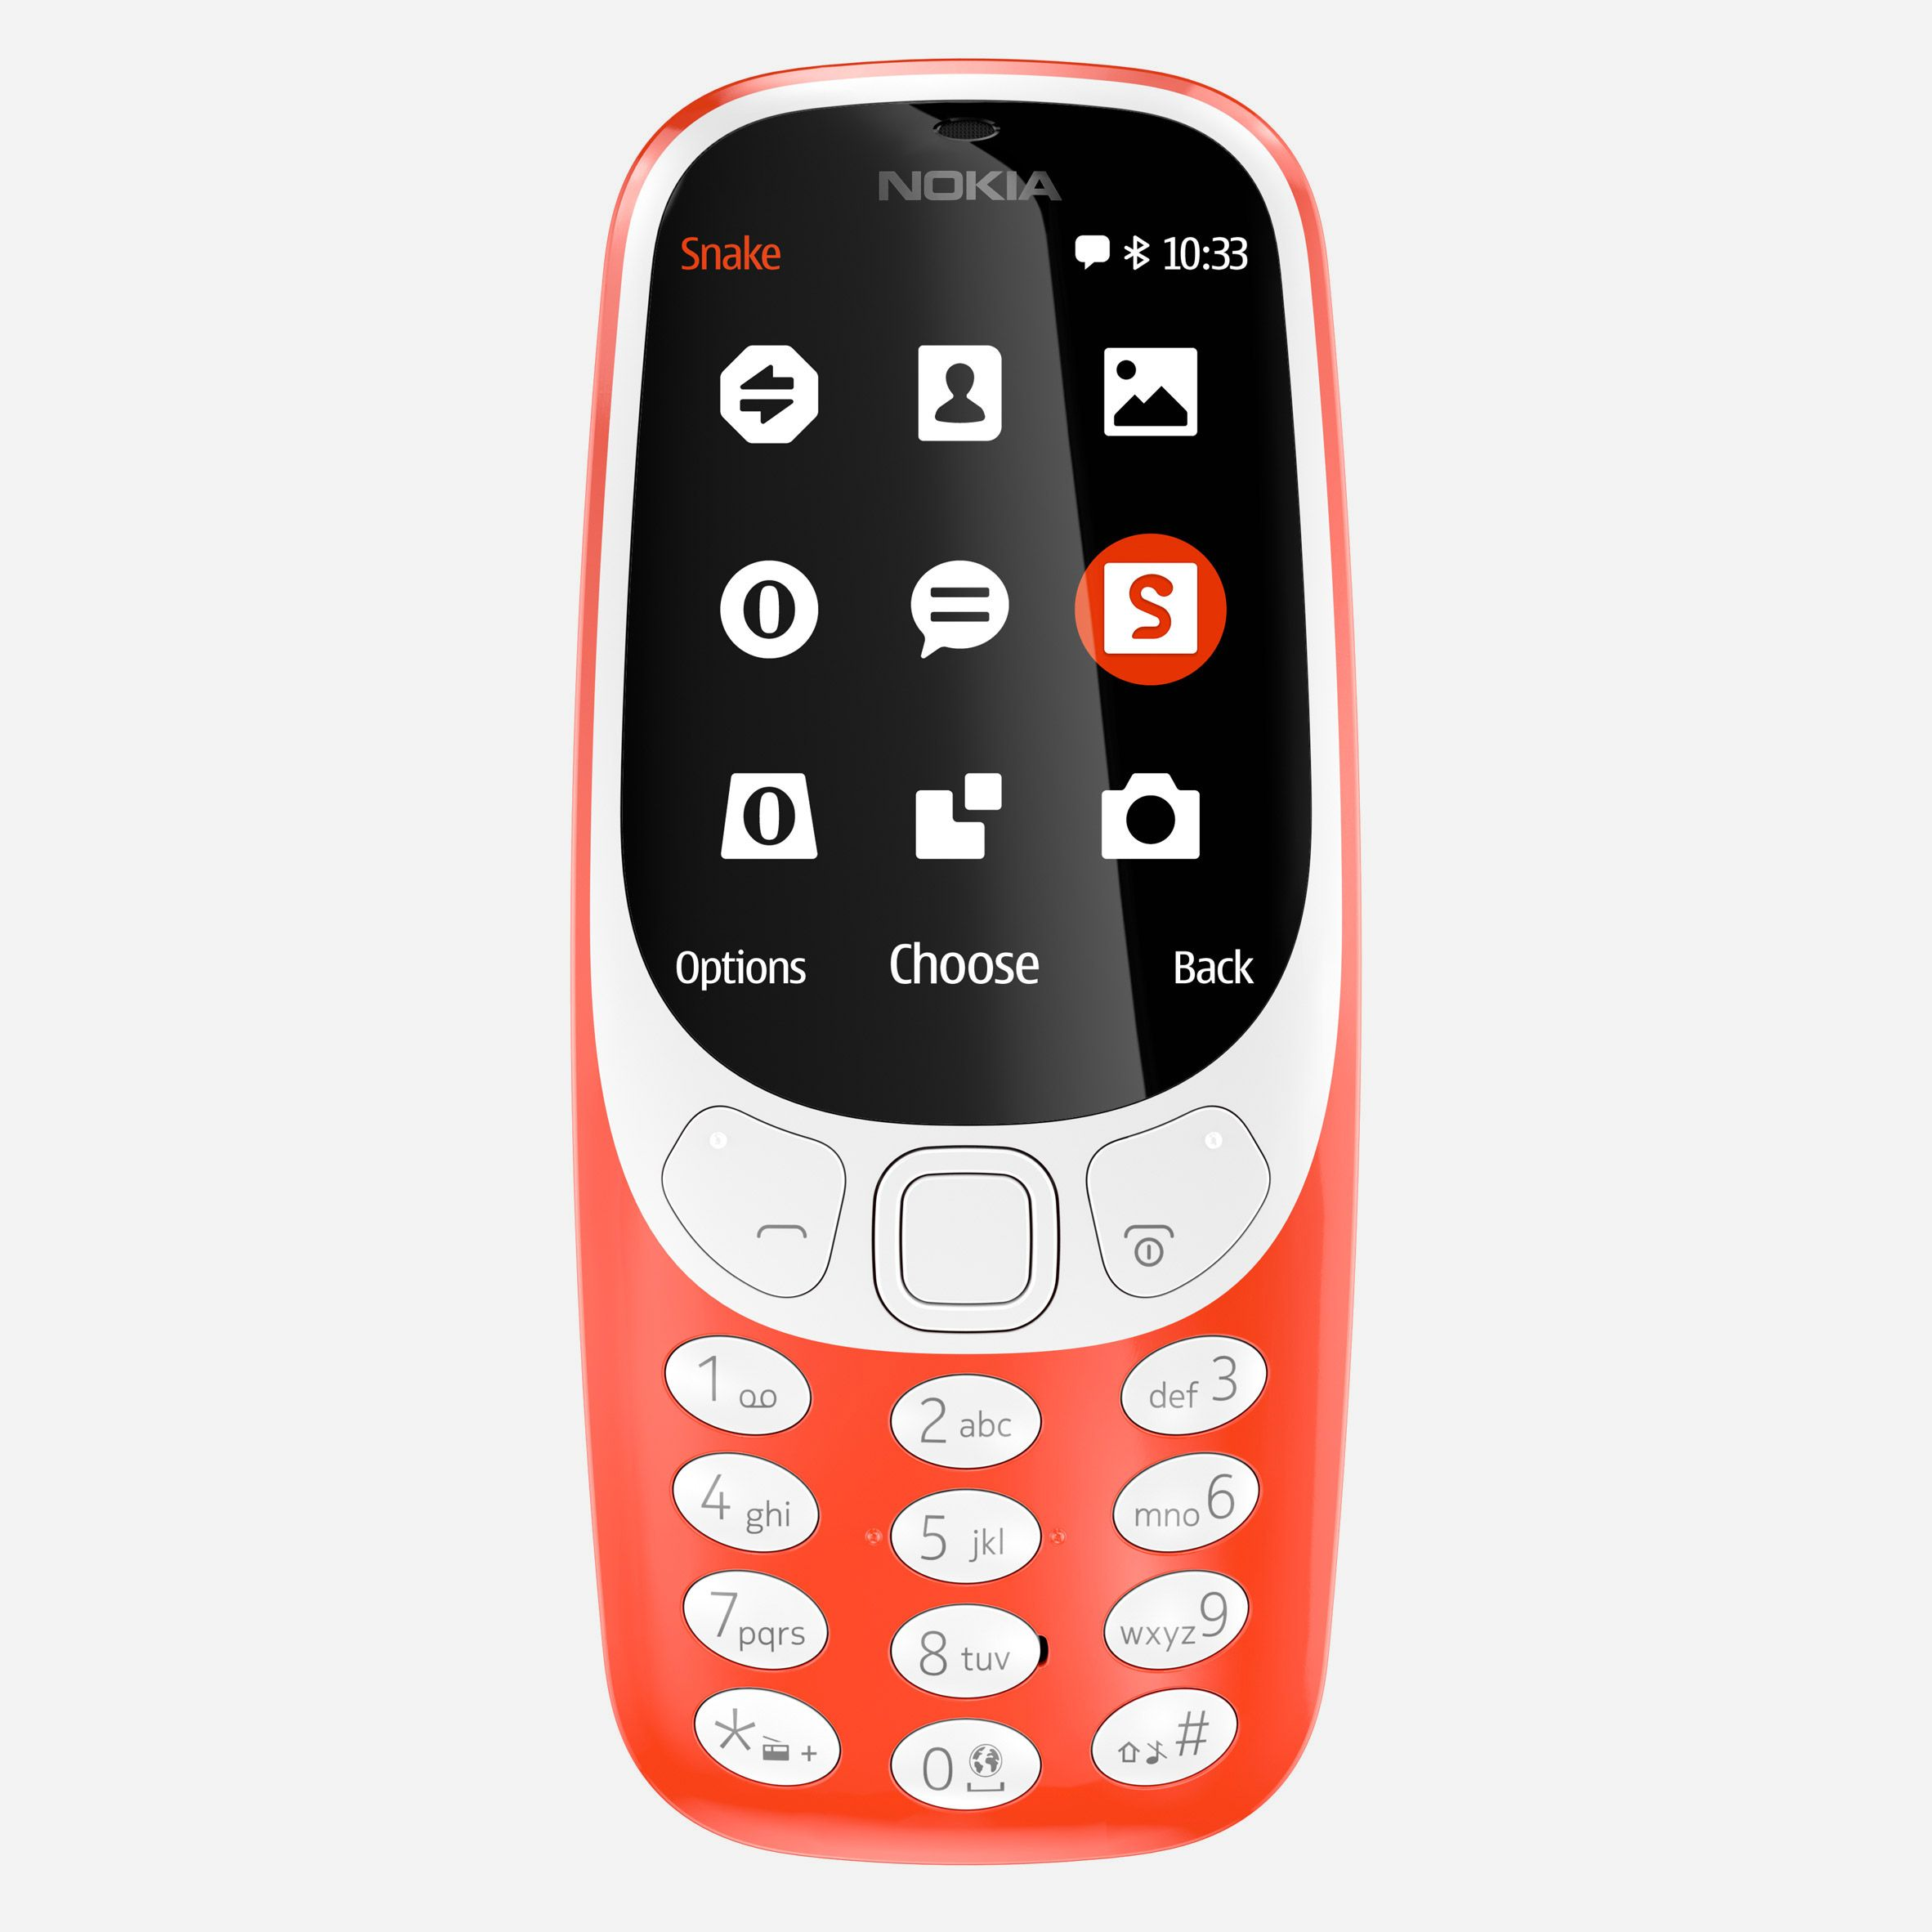 New look Nokia 3310 mobile phone revealed